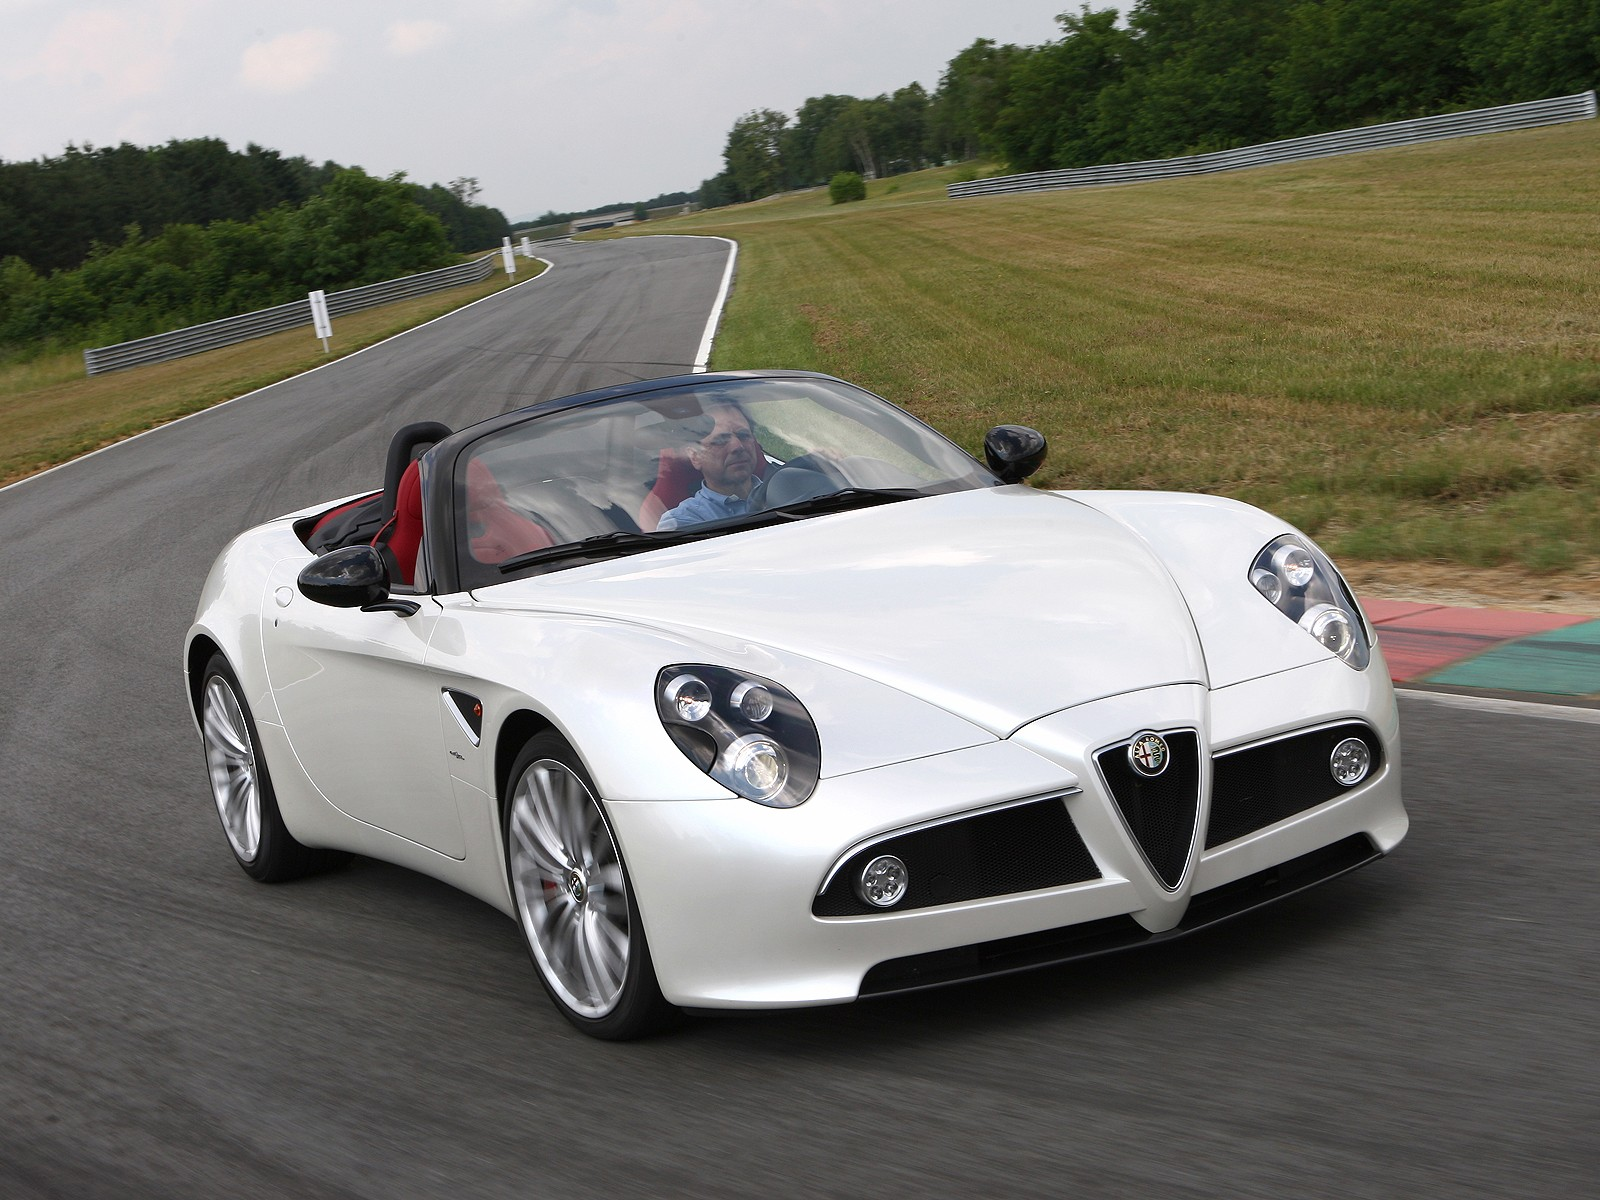 alfa romeo 8c spider specs 2008 2009 2010 autoevolution. Black Bedroom Furniture Sets. Home Design Ideas